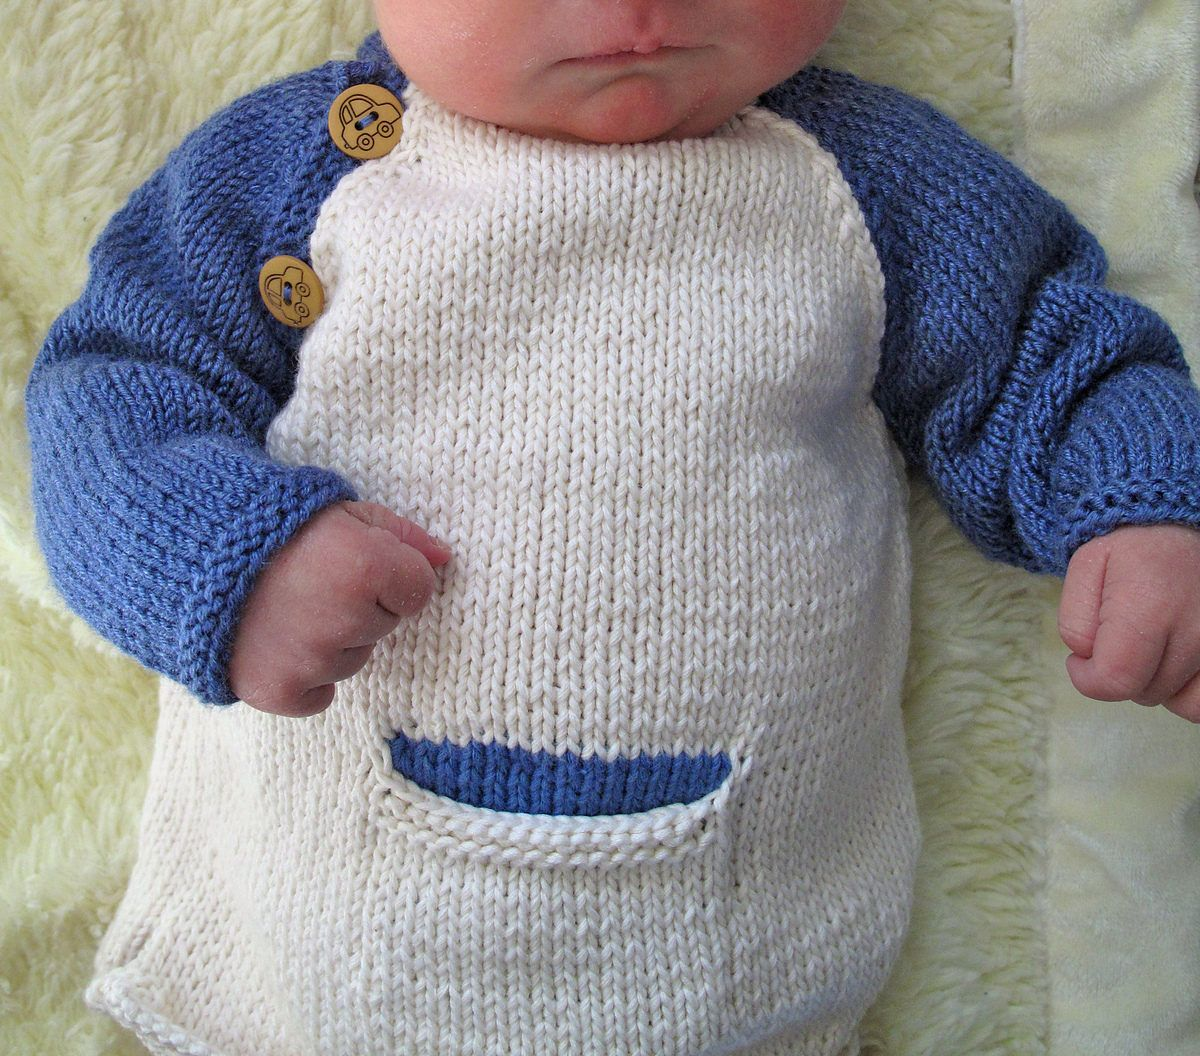 d88afd826 Free Knitting Pattern for Baby Baseball Tee With Mittens - This two ...